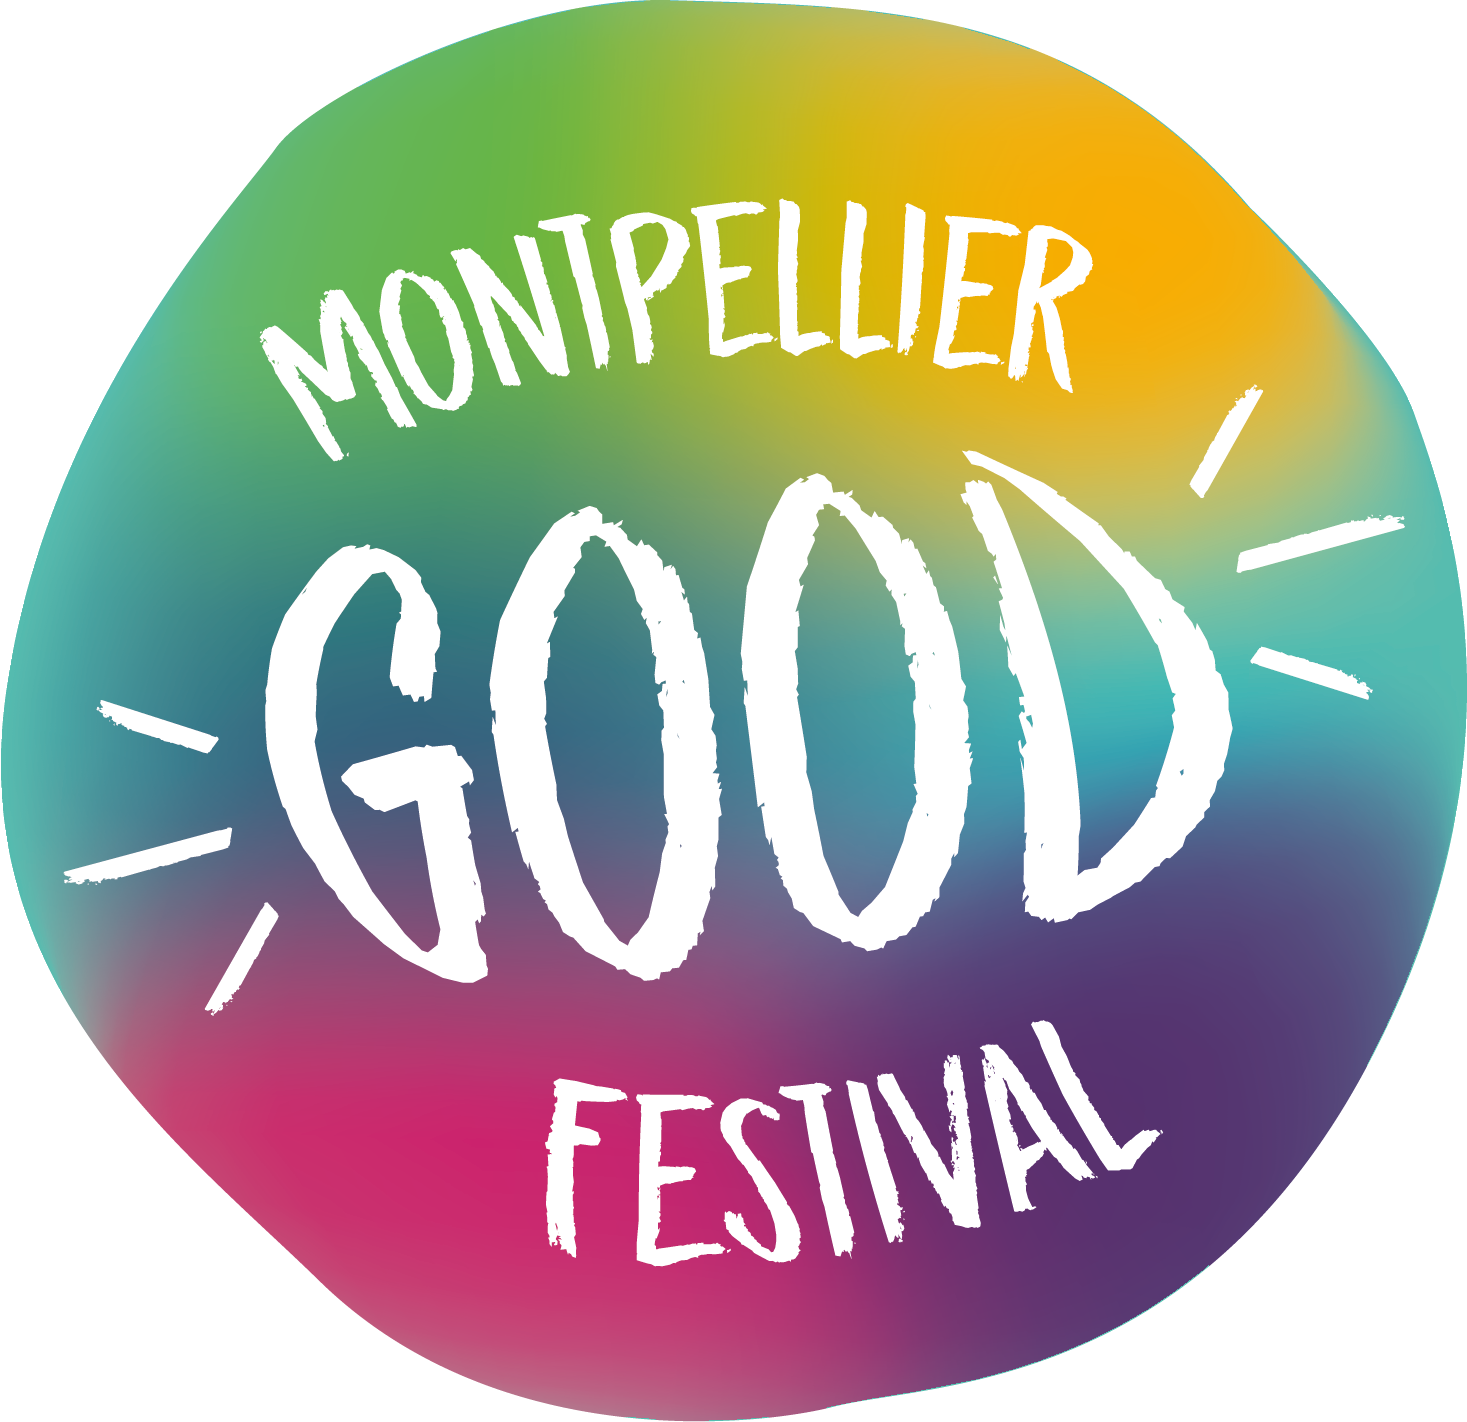 Montpellier Good Festival